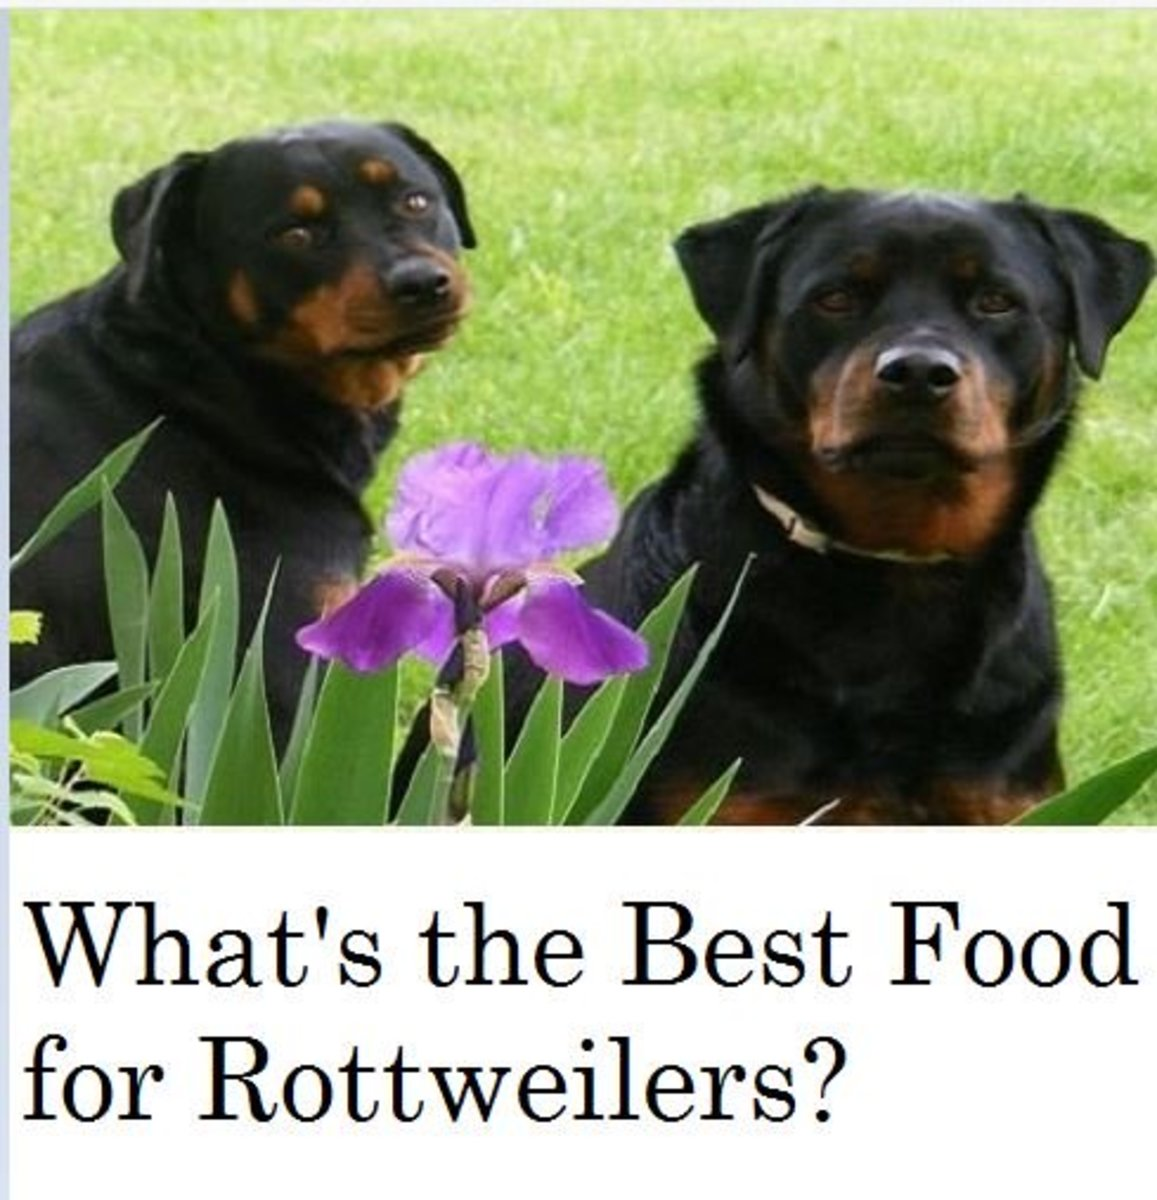 What's the Best Dog Food for Rottweilers?